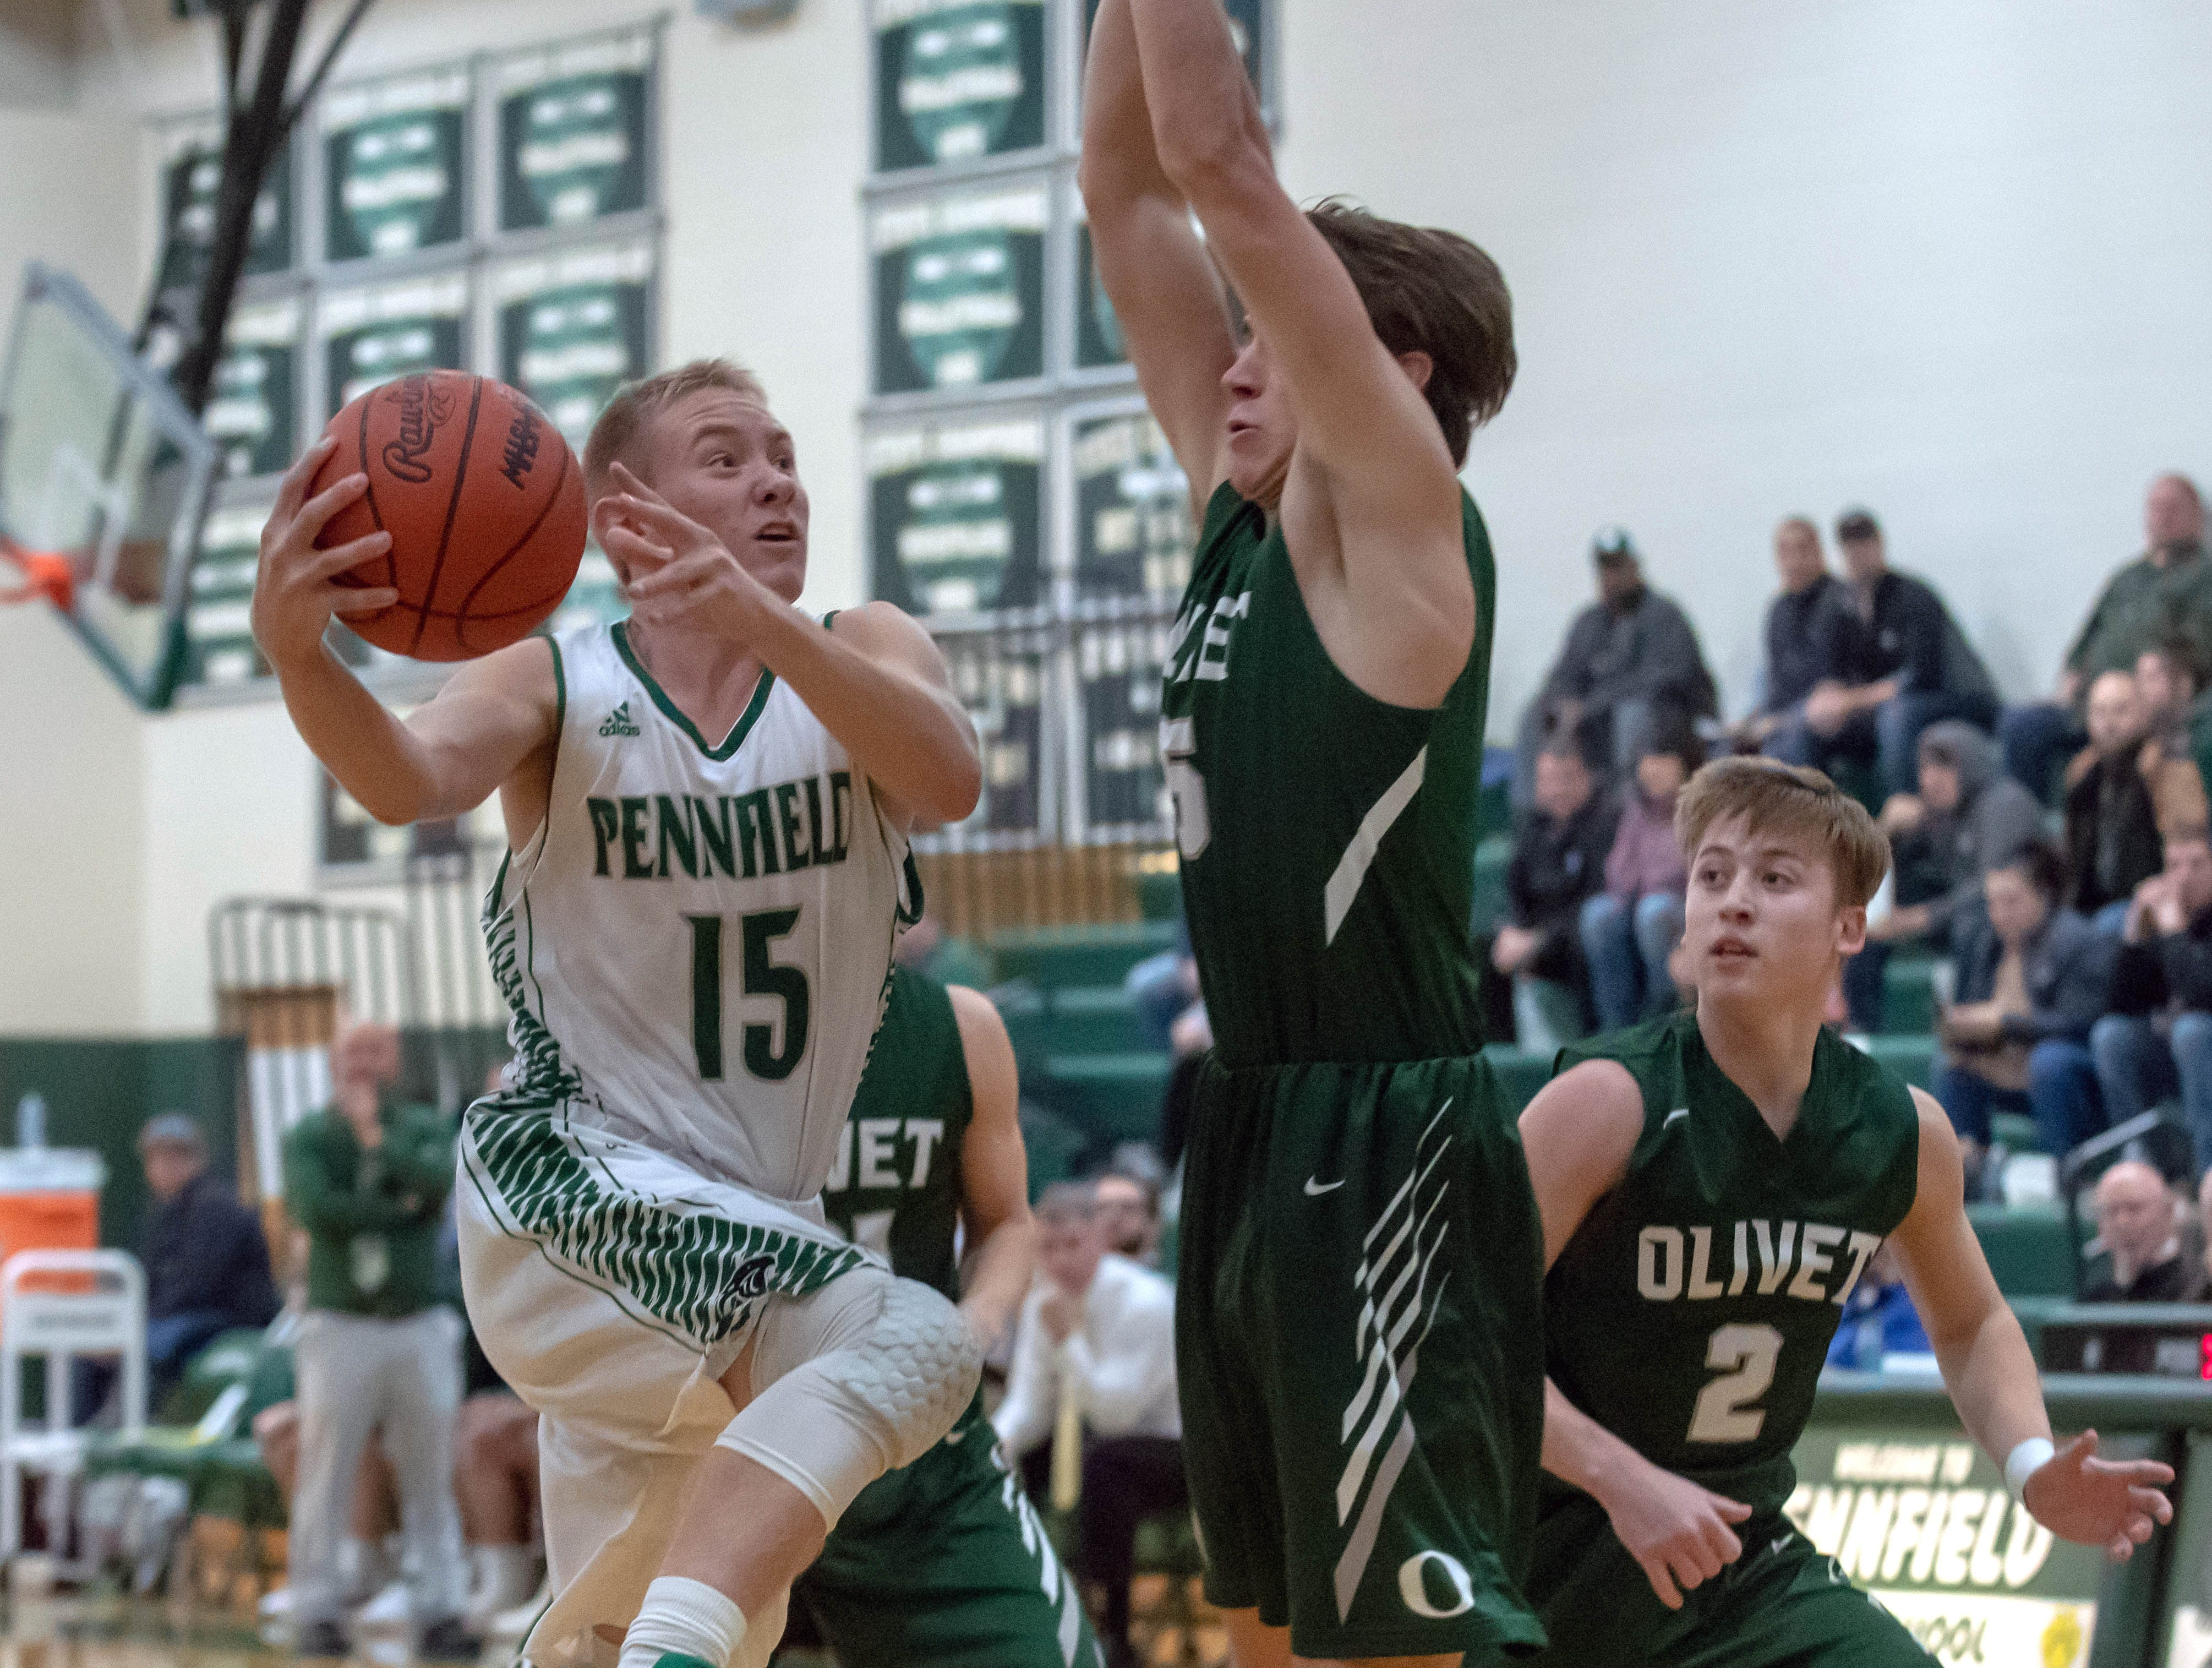 Pennfield's Keagan Burns (15) drives the basket during game action Tuesday night.